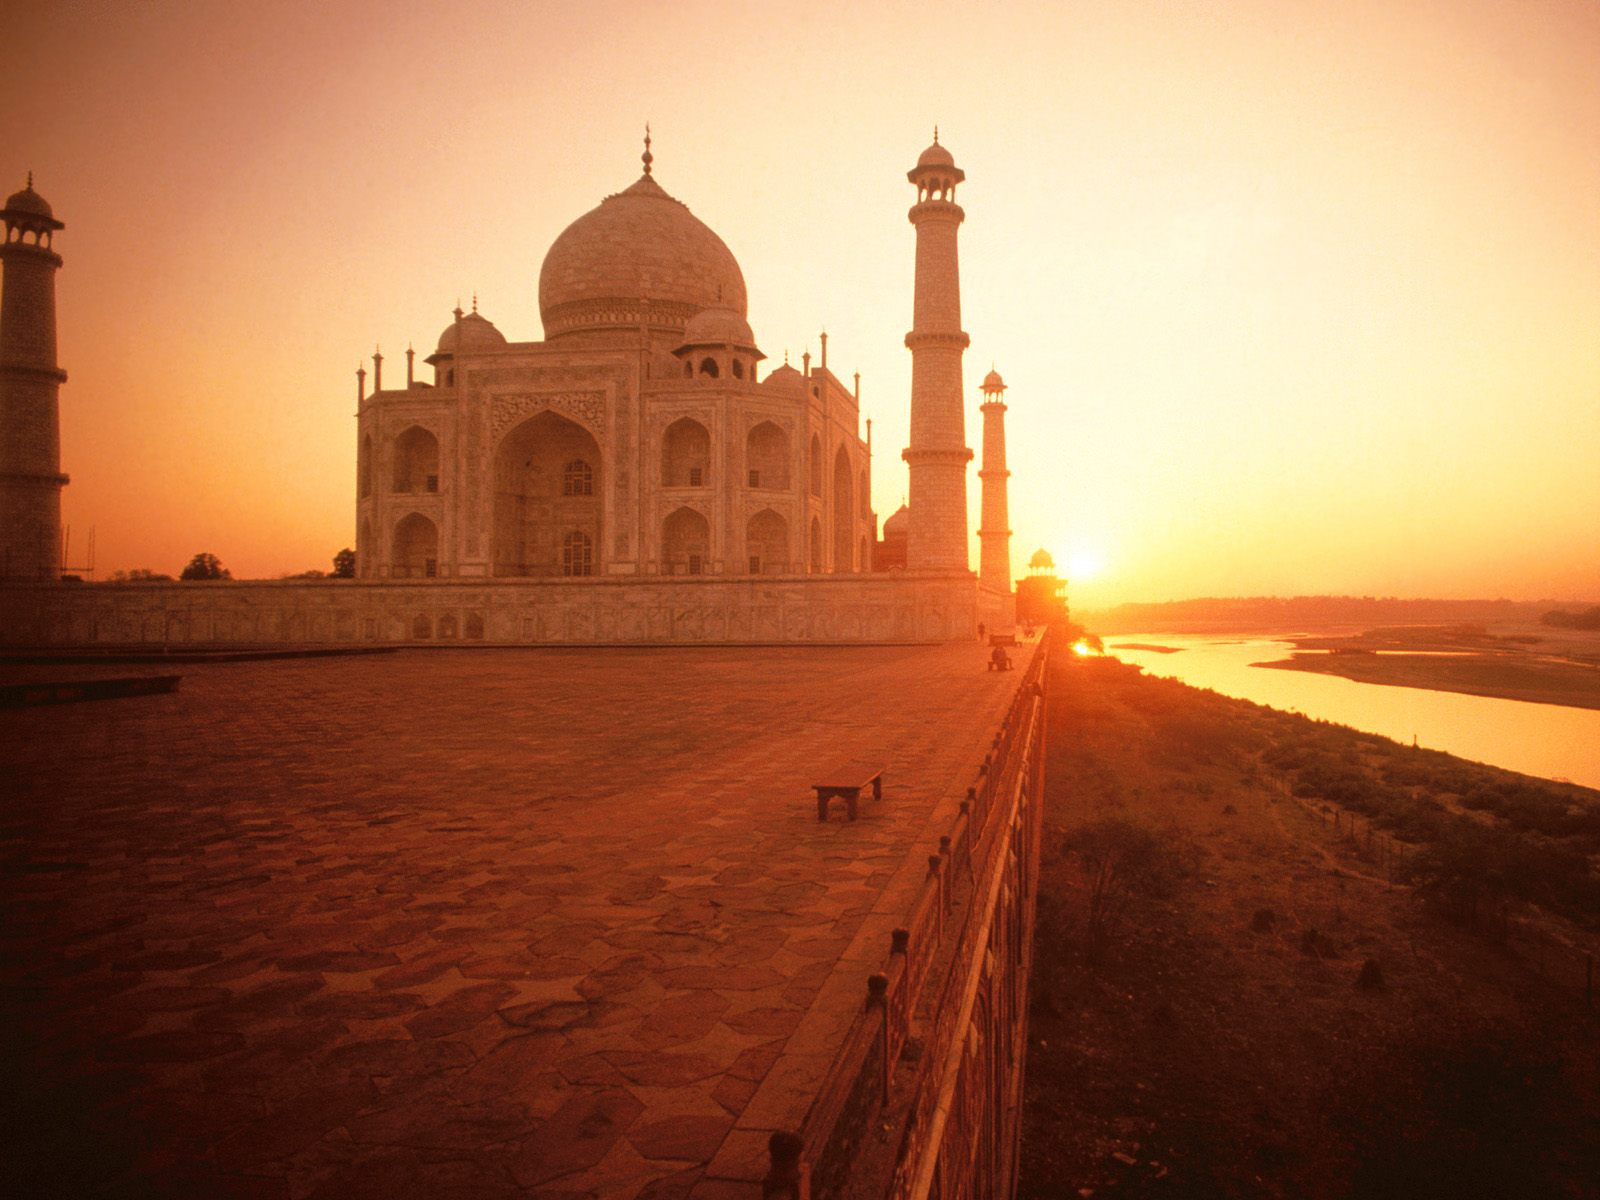 Symbol of Love, Taj Mahal